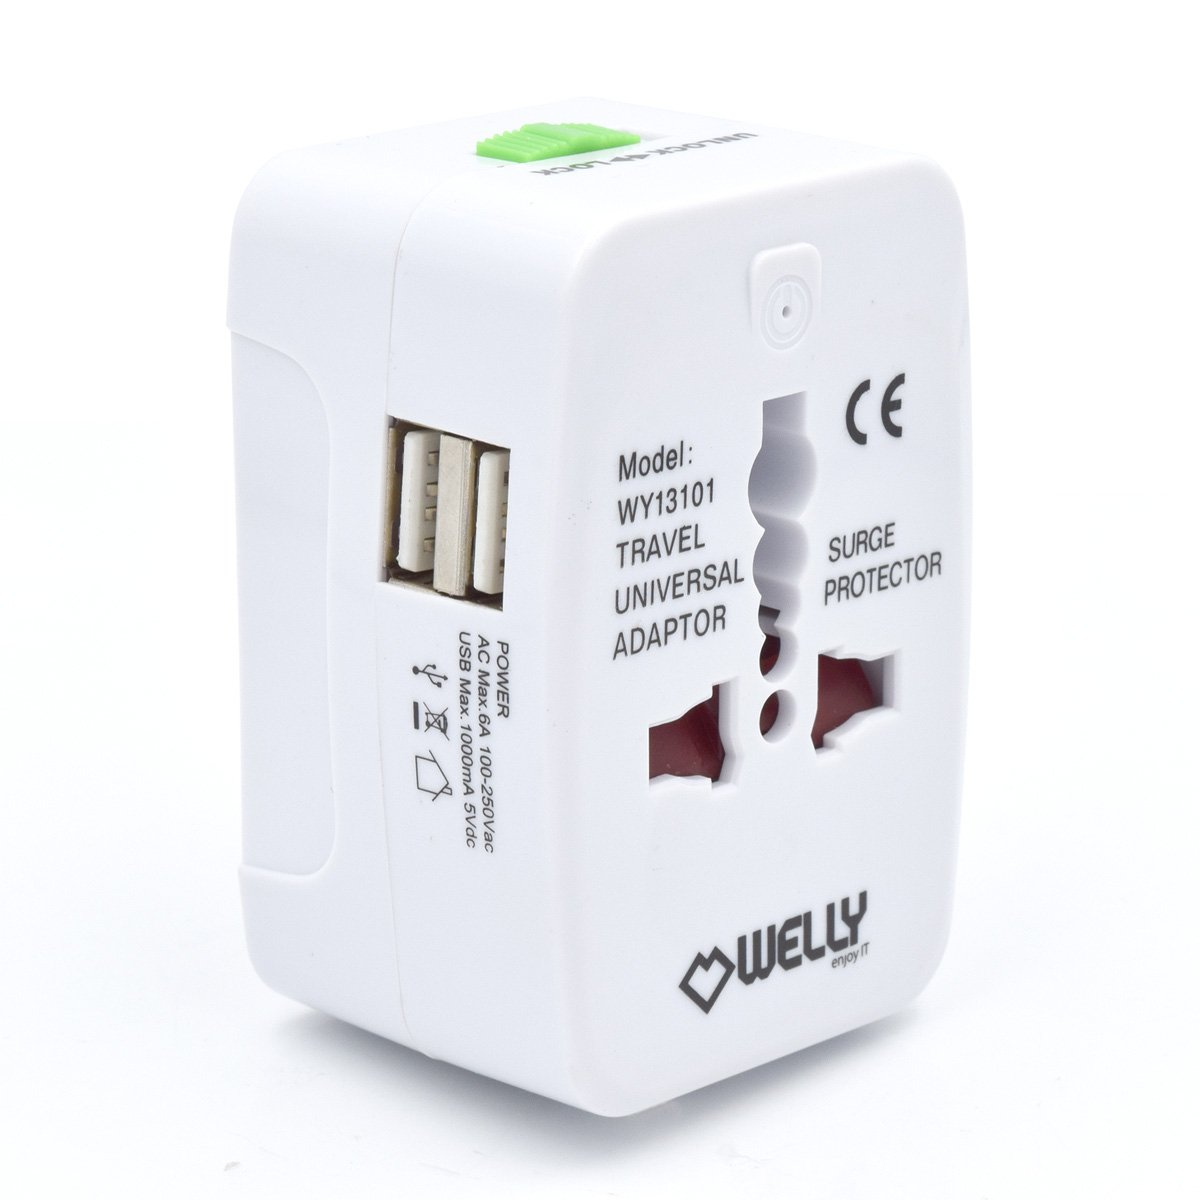 Welly Enjoy WY13101 Universal Welt Reiseadapter mit 2 Dual USB Port Netzadapterstecker Reisestecker mit EU/UK/US/AU Steckdosenadapter Weiß